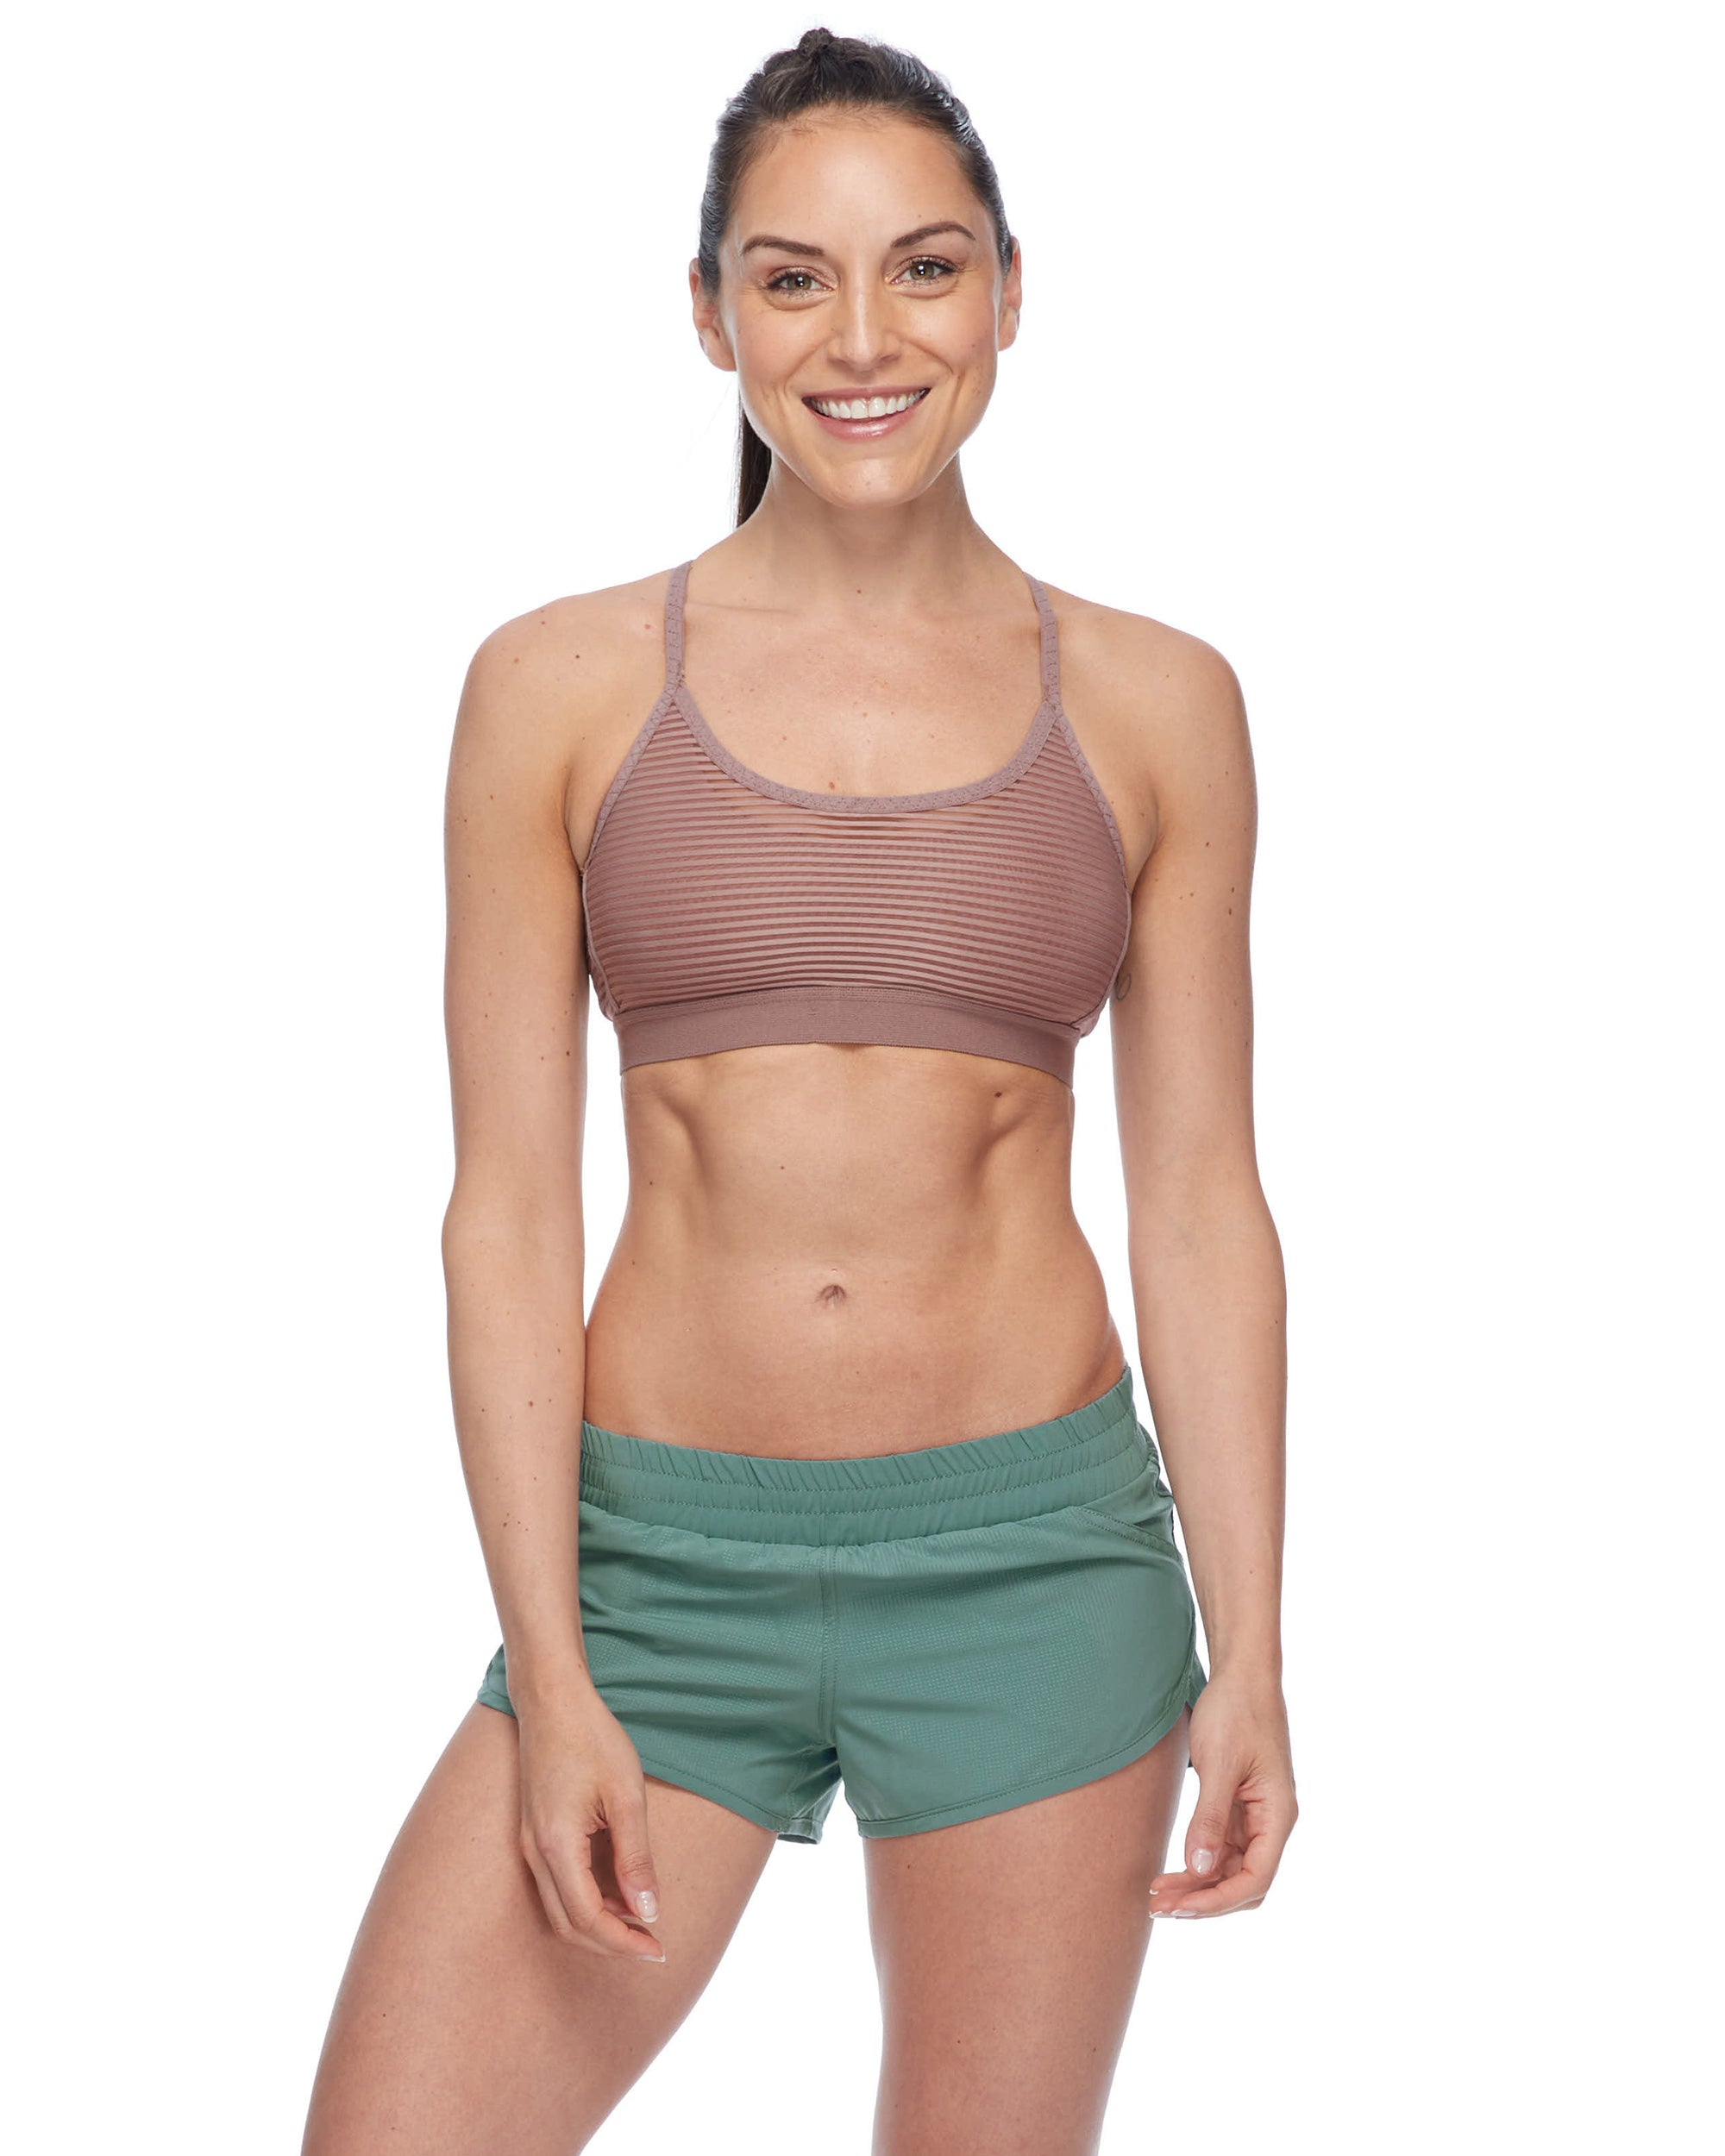 Sunna Eco Light-Support Sports Bra - Mocha